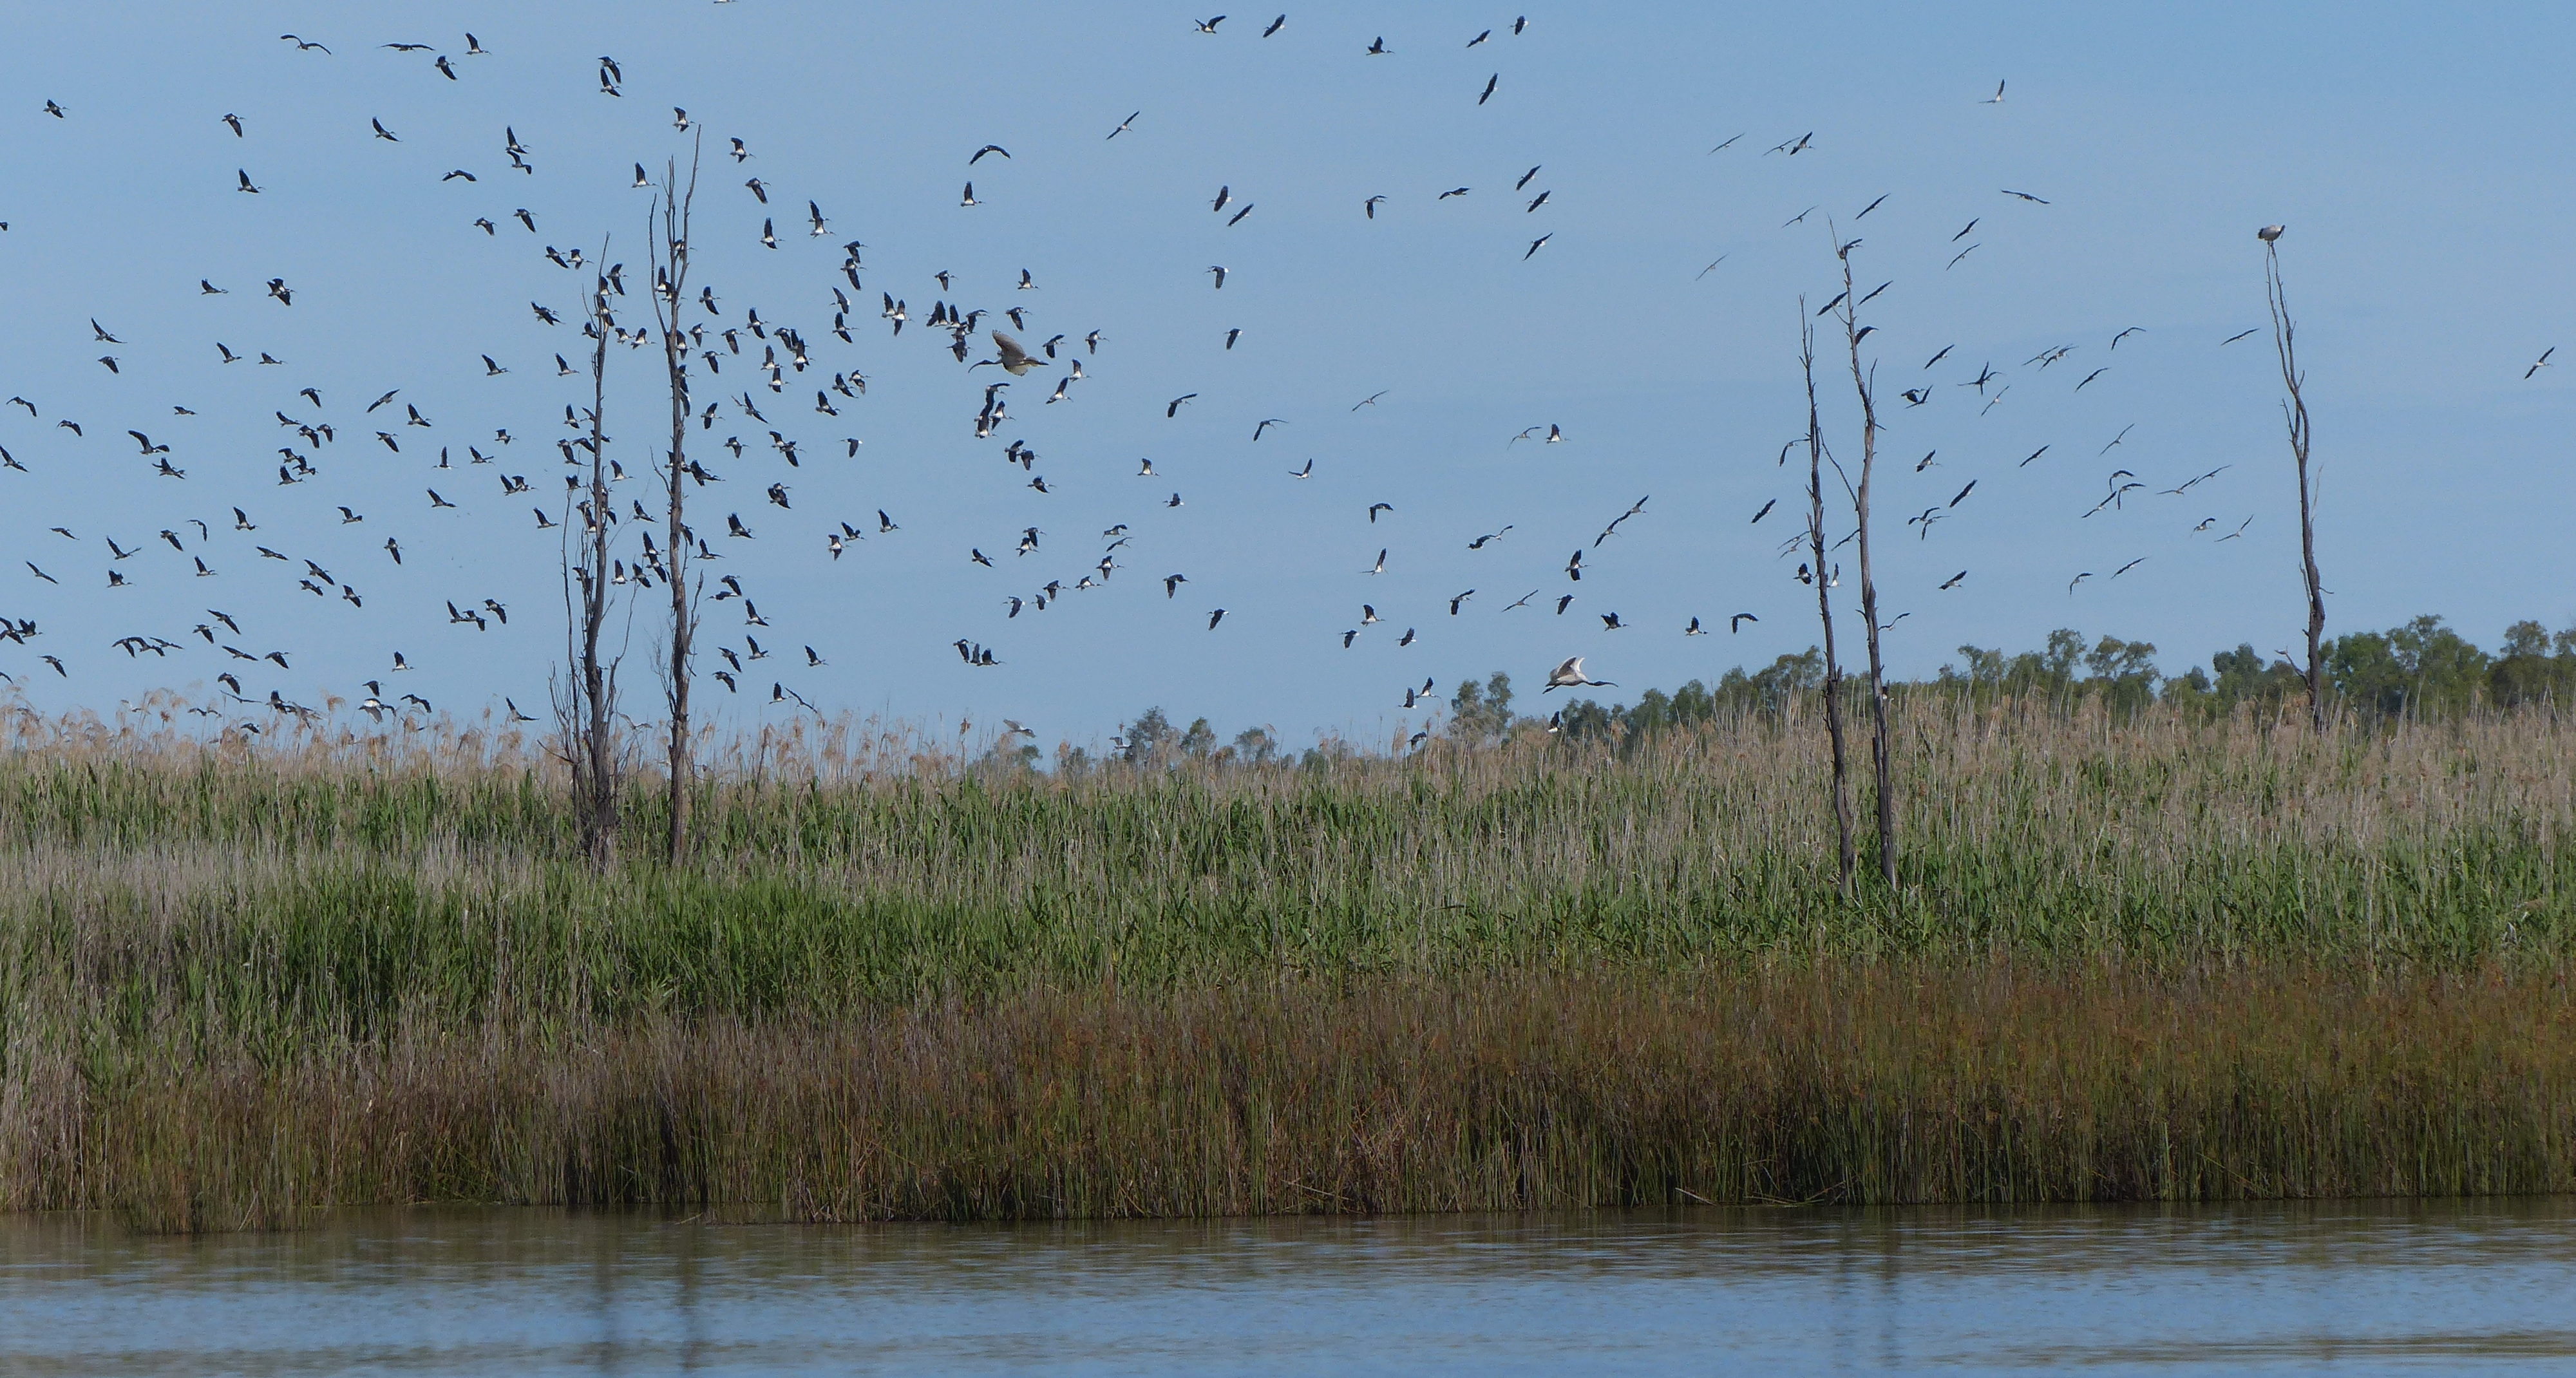 A flock of straw-necked ibis and Australian white ibis take to the sky above their breeding ground at the Barmah-Millewa Forest, a wetland of the Murray River. Image credit: Heather McGinness